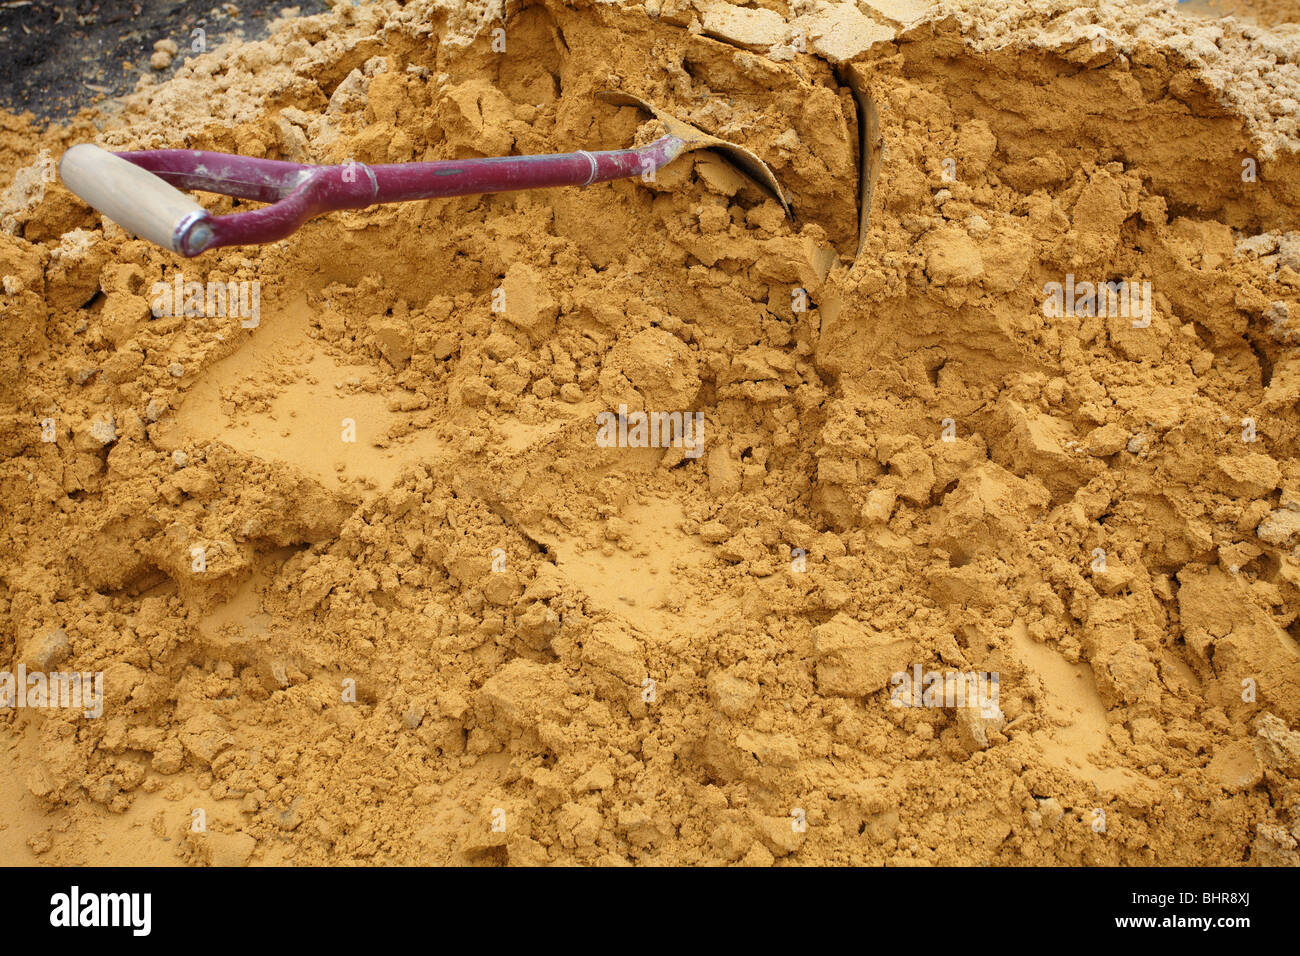 Building Sand with spade detail - Stock Image